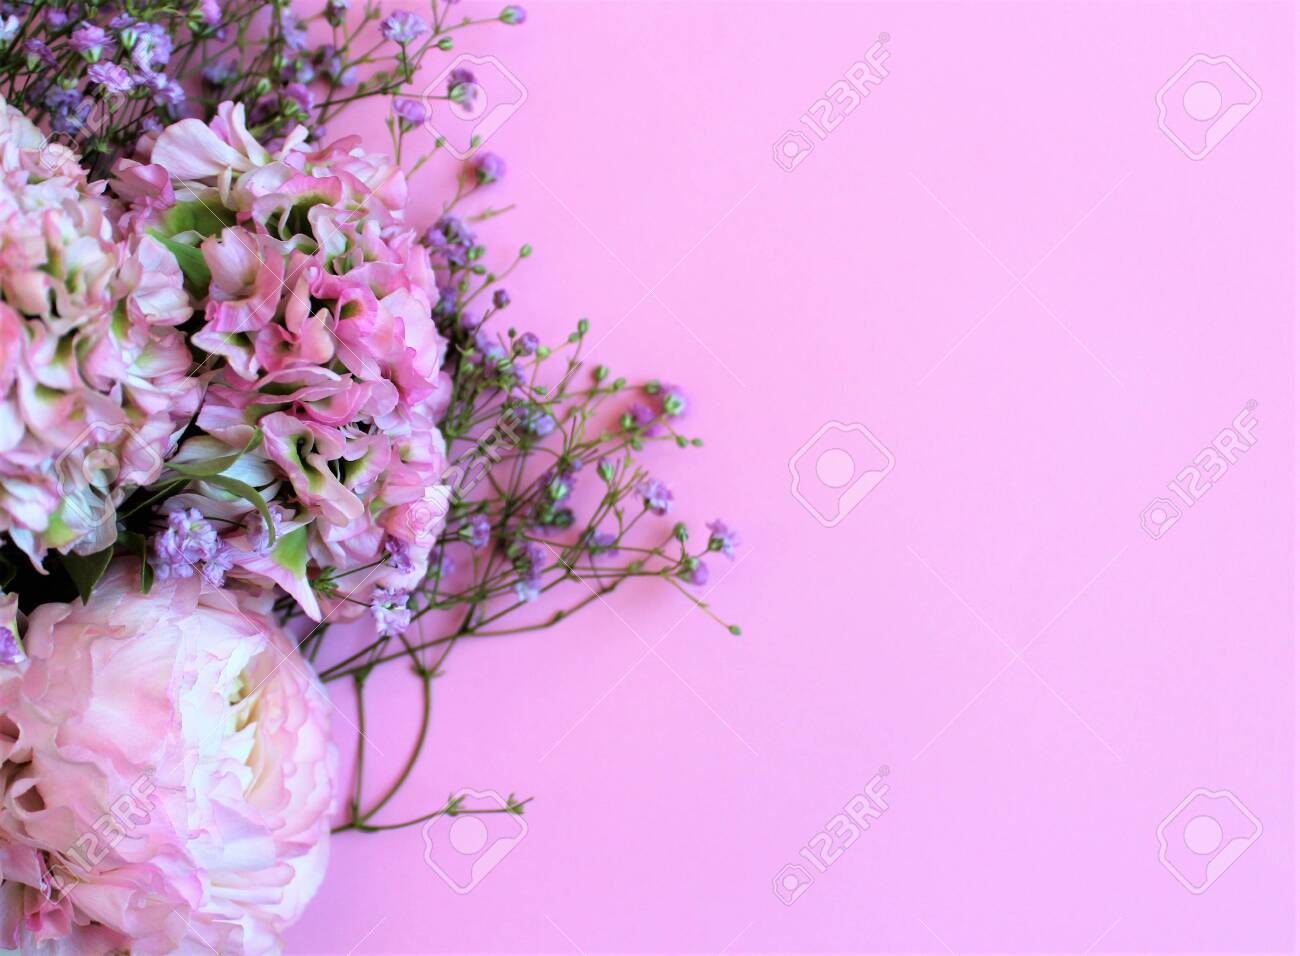 Light pink flowers (Ranunculus) on a pink background. Background for greetings, invitations, cards. - 122184394